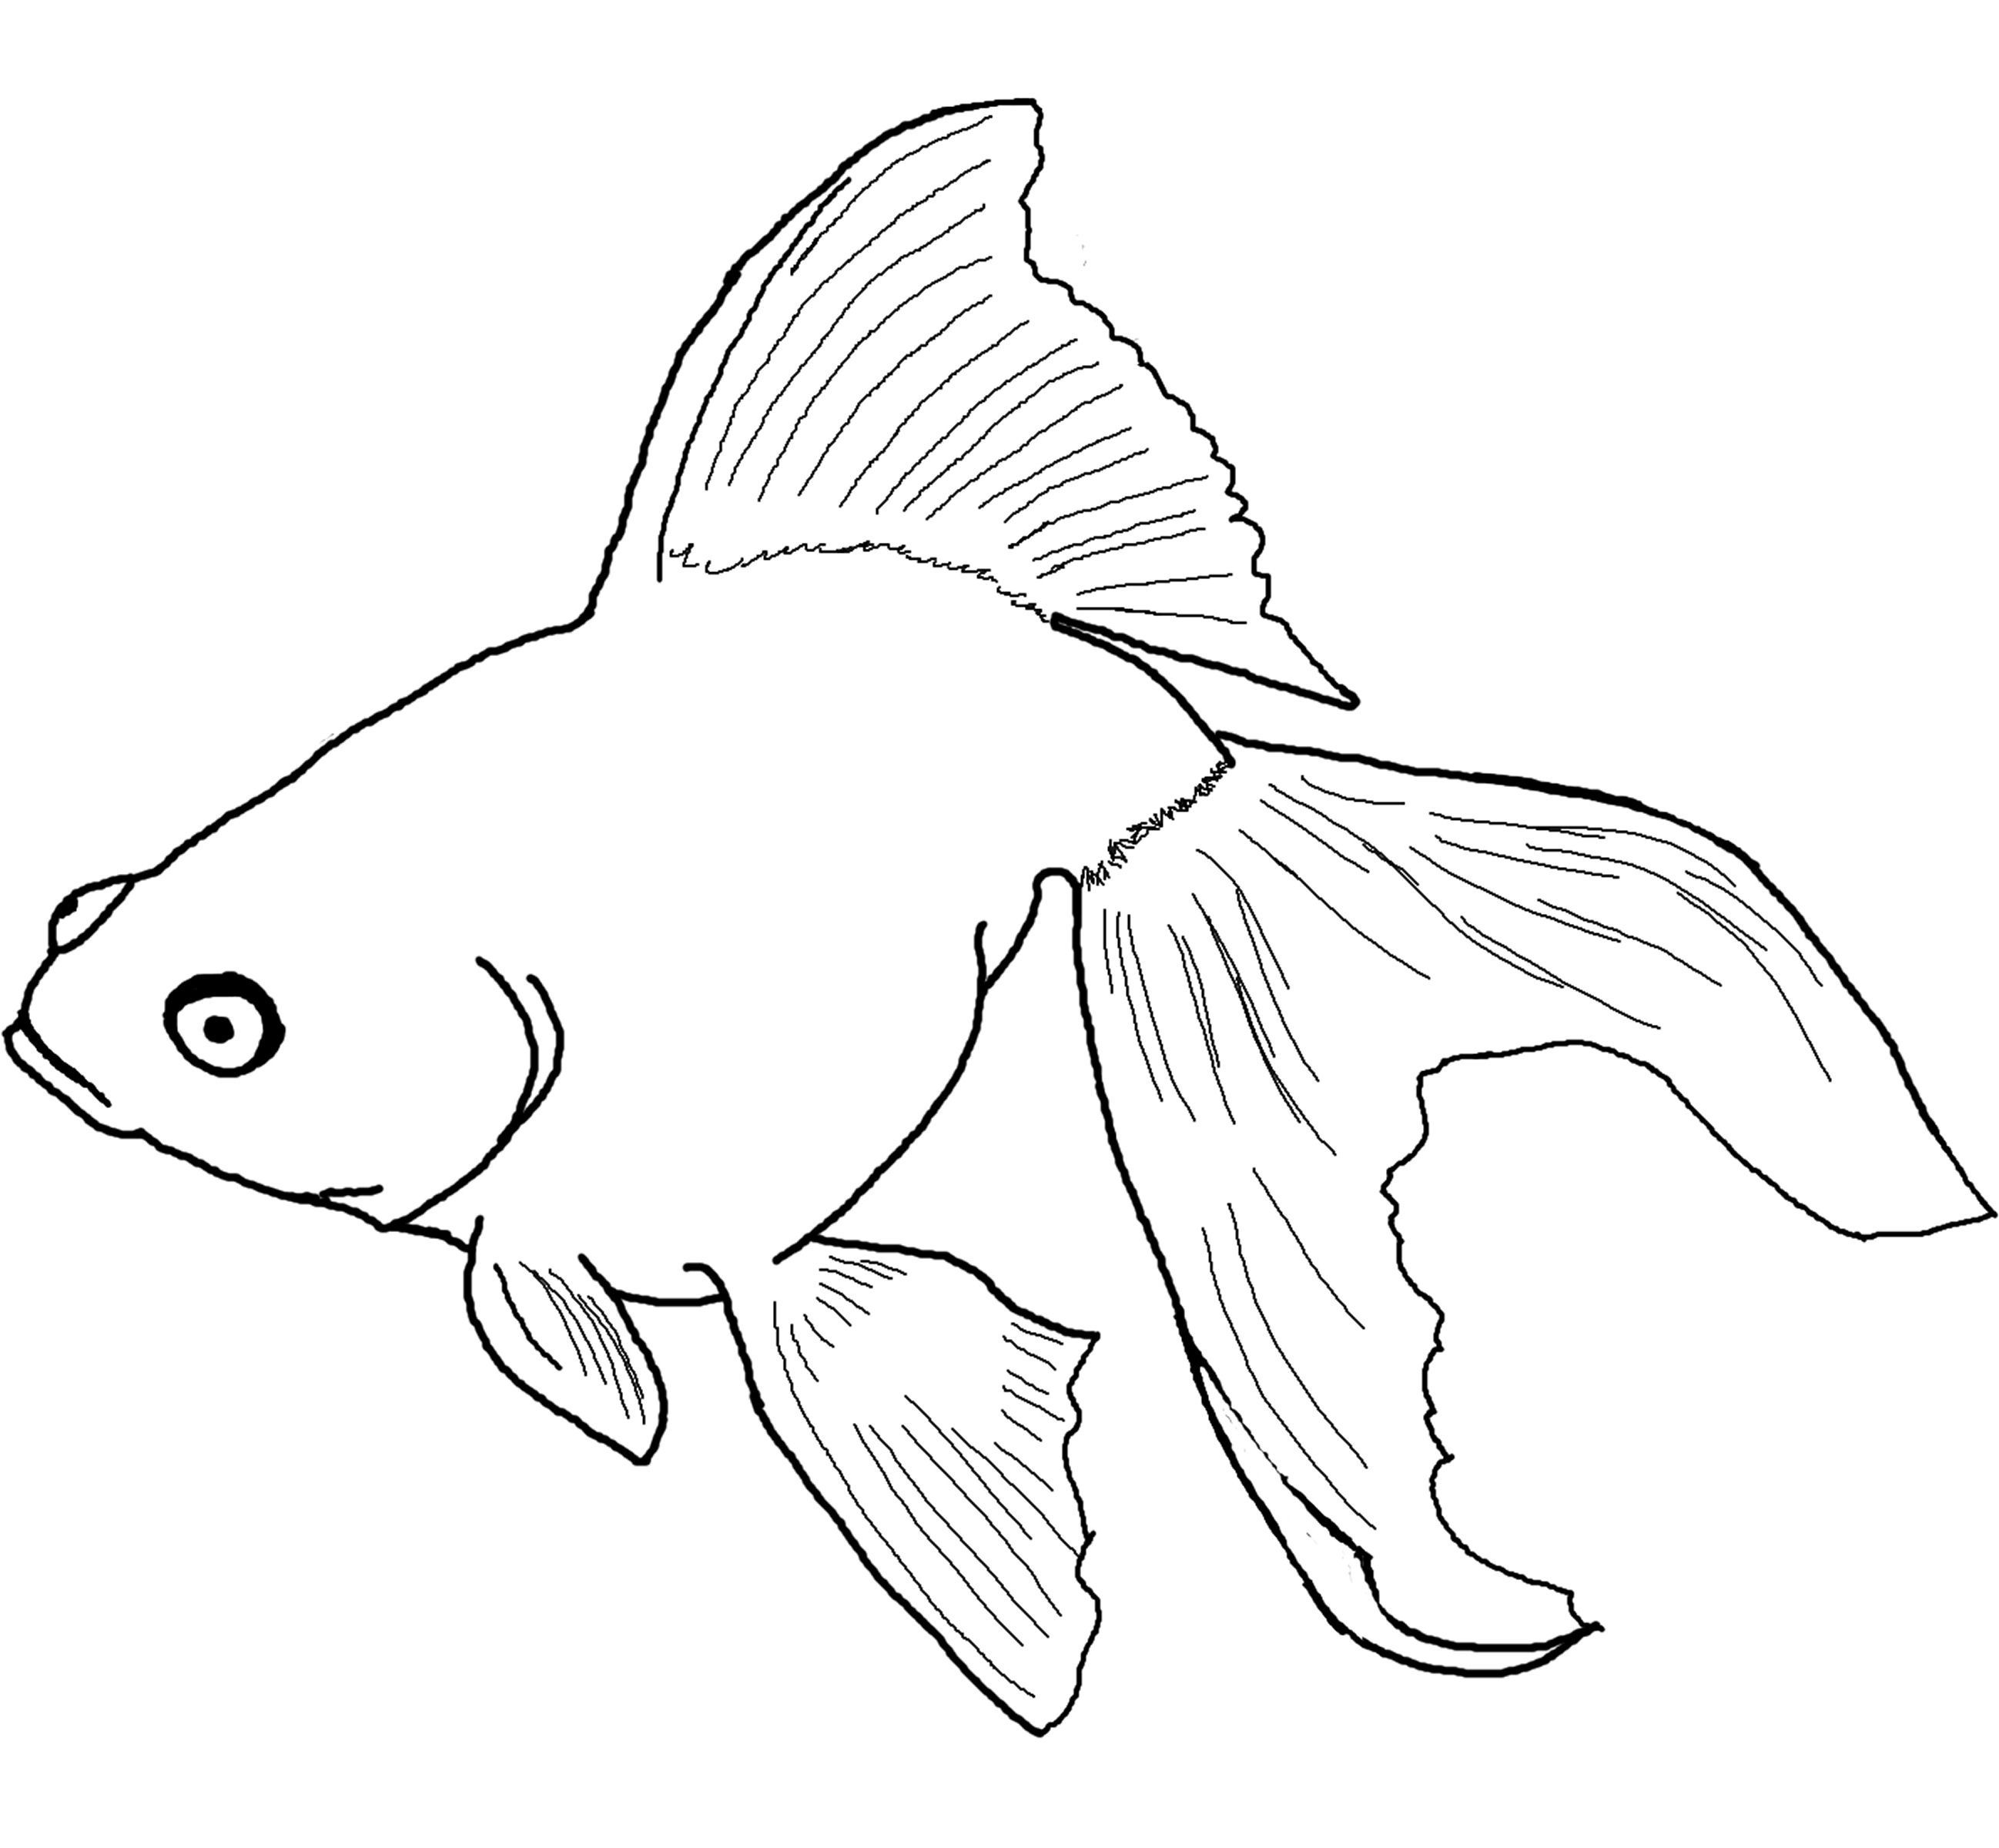 2596x2400 Small Fish Coloring Pages Coloring Pages Drawing Ideas